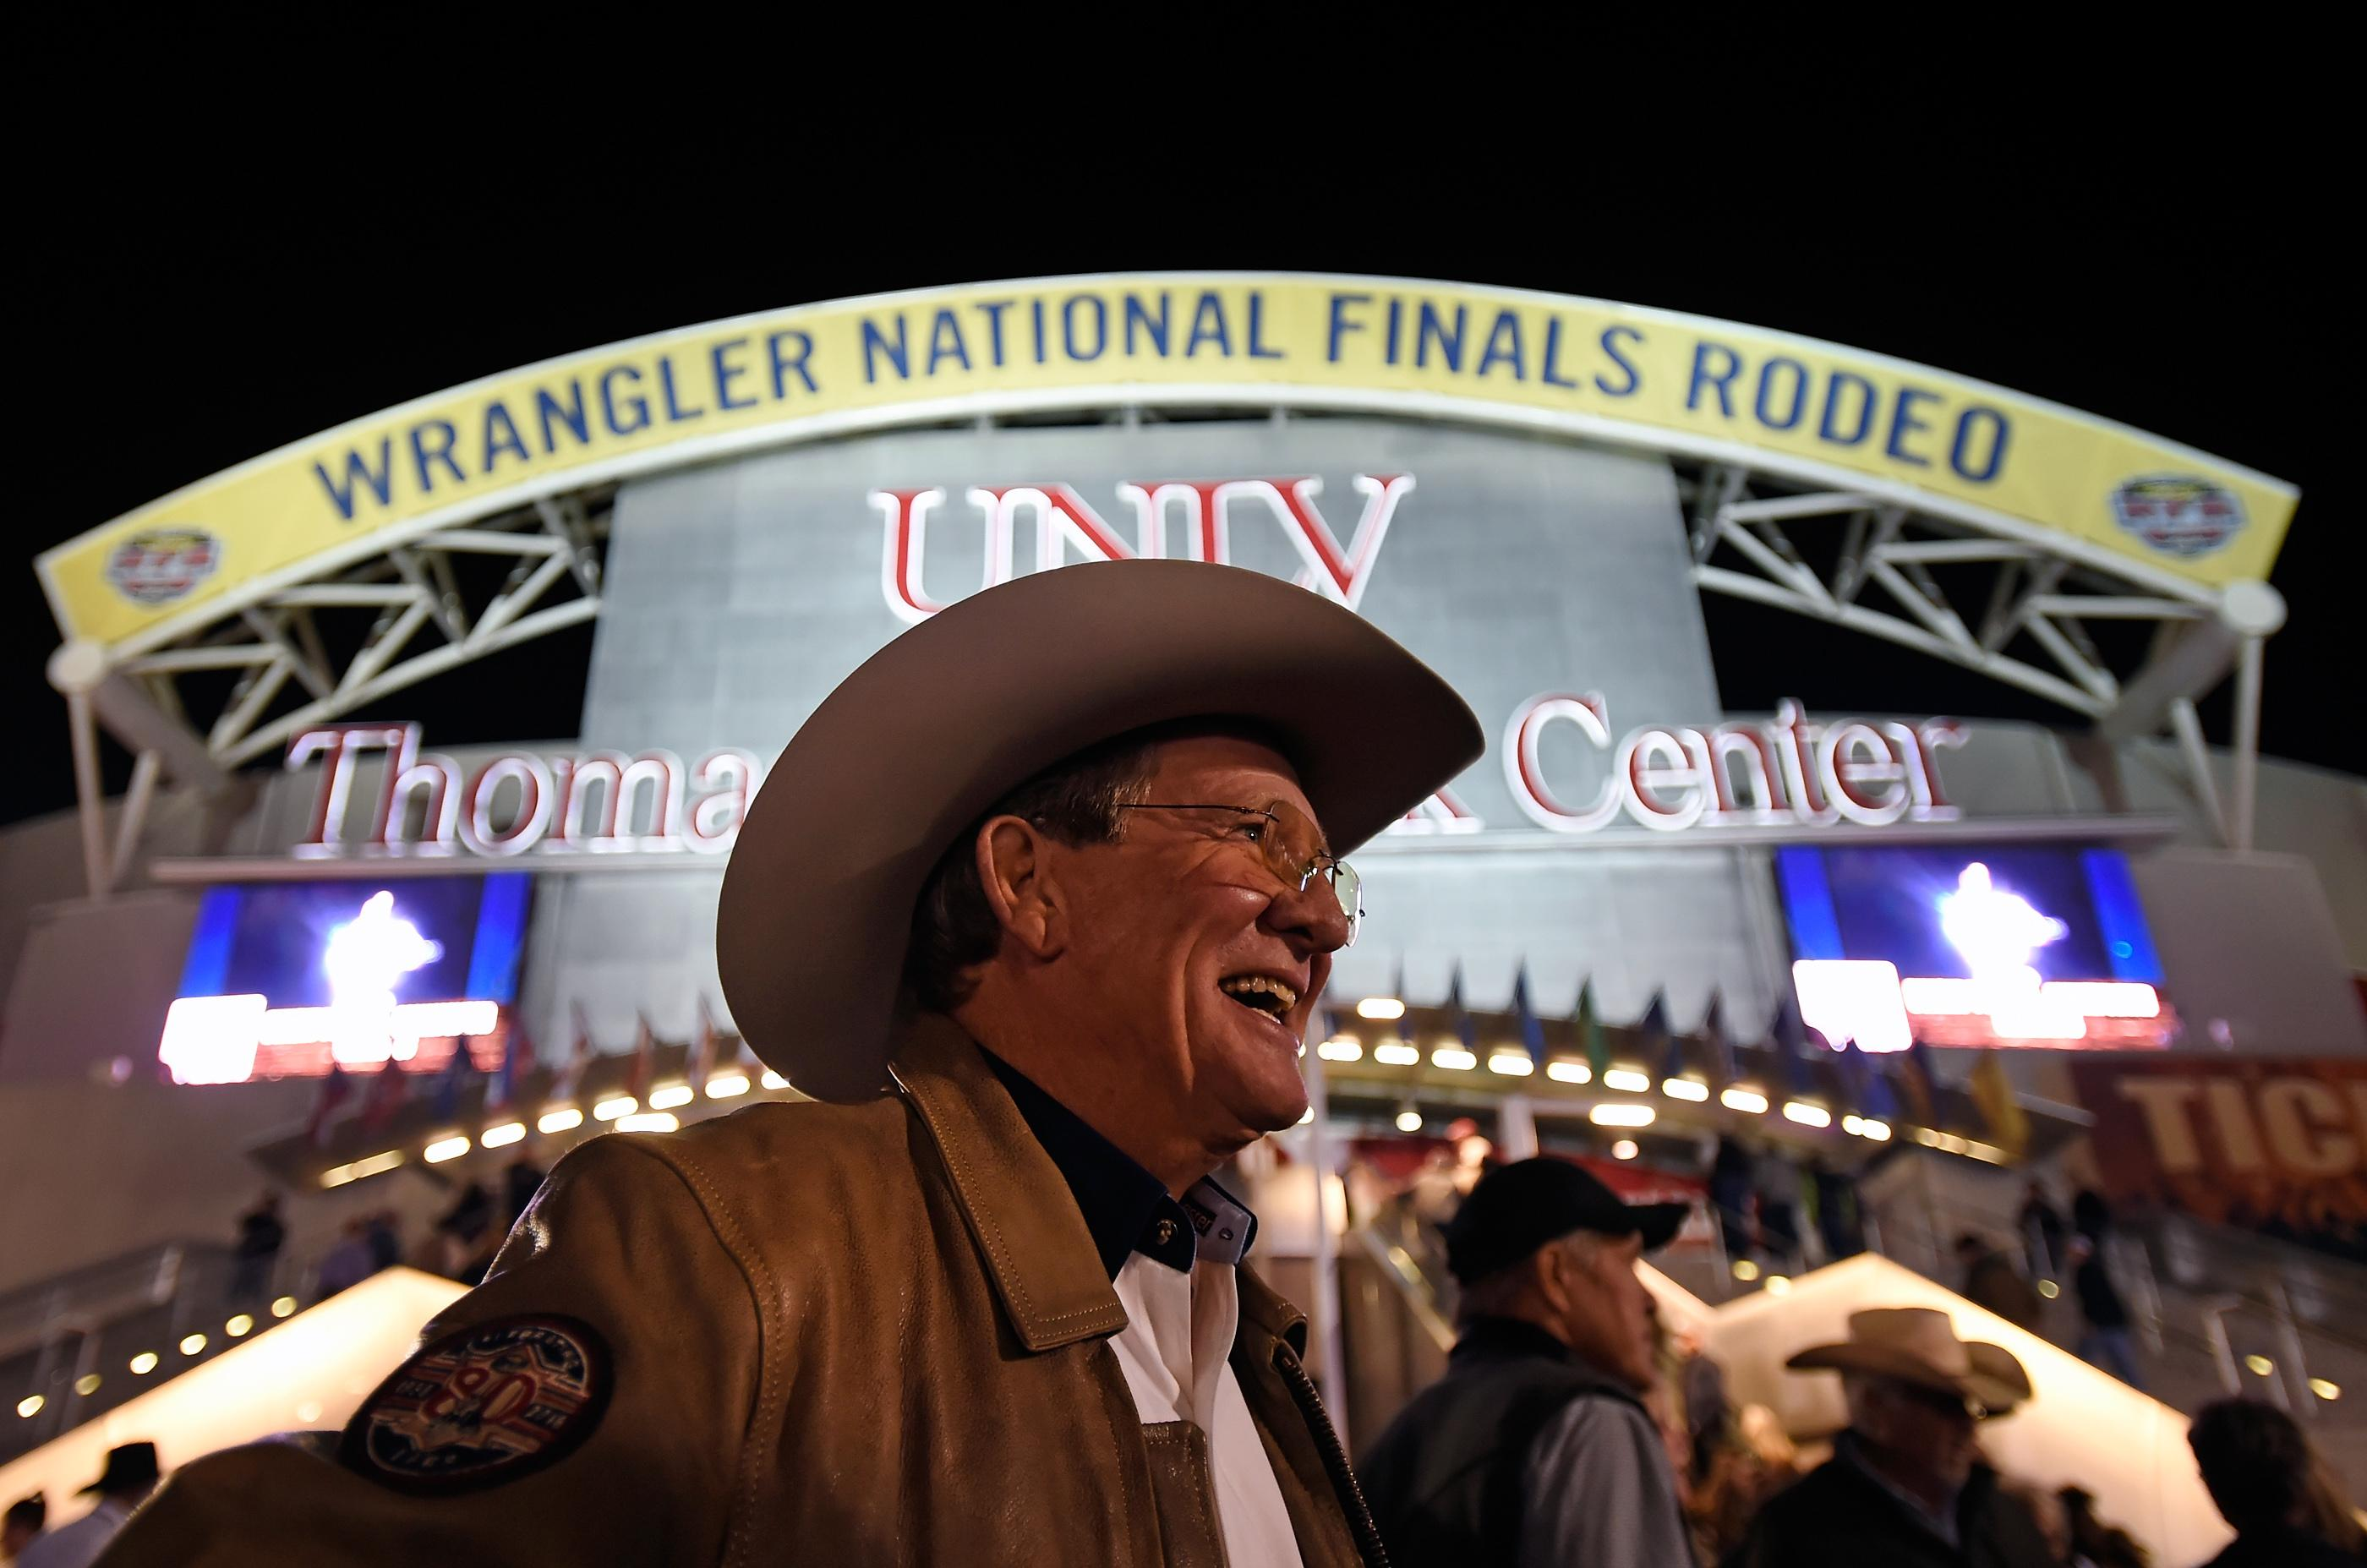 Delbert Warren of Oklahoma is all smiles before as he arrives for the seventh go-round of the National Finals Rodeo at the Thomas & Mack Center Wednesday, Dec. 13, 2017, in Las Vegas. CREDIT: David Becker/Las Vegas News Bureau